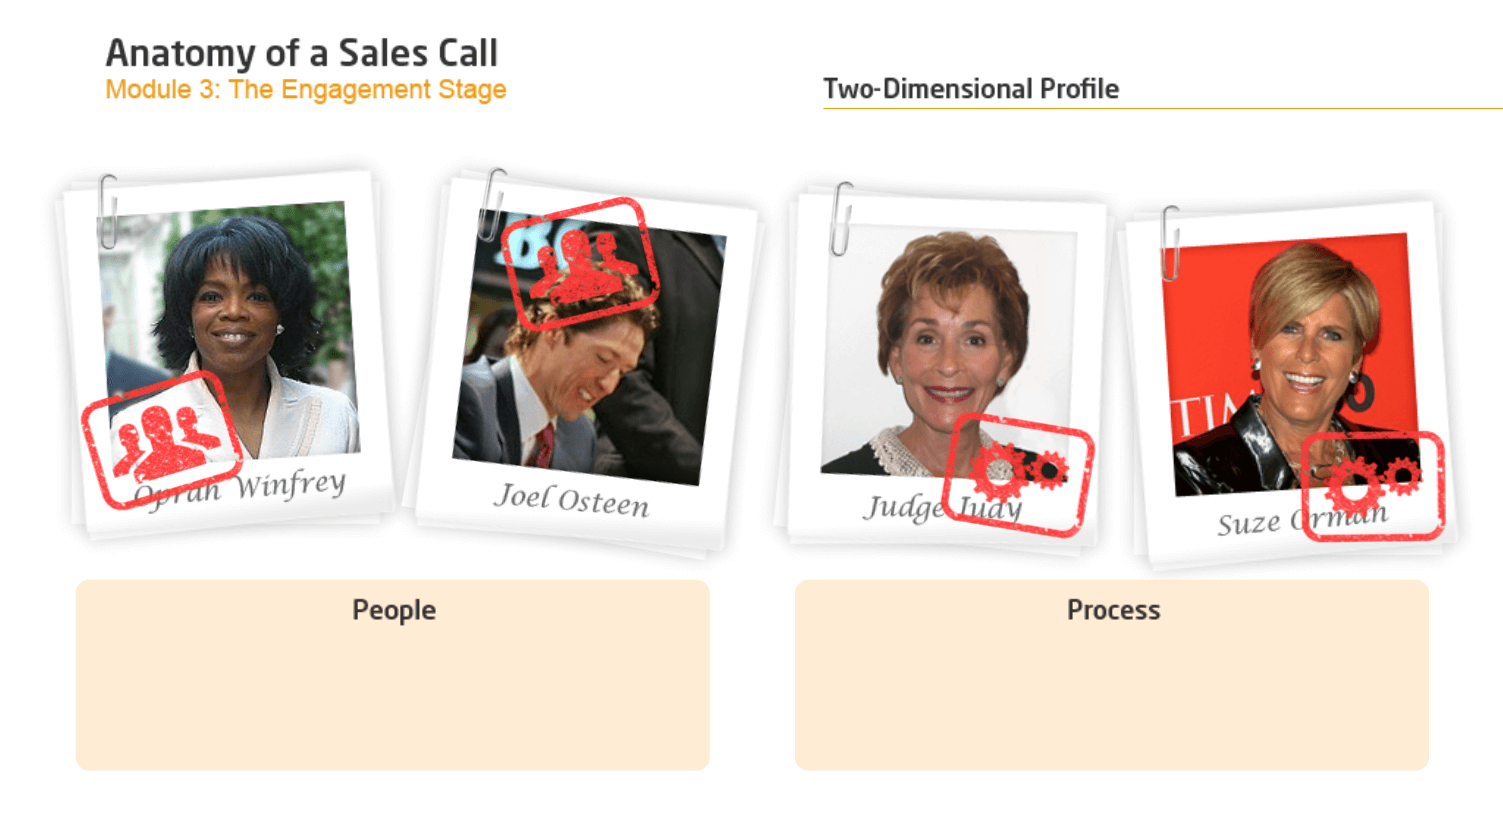 2. Anatomy of a Sales Call